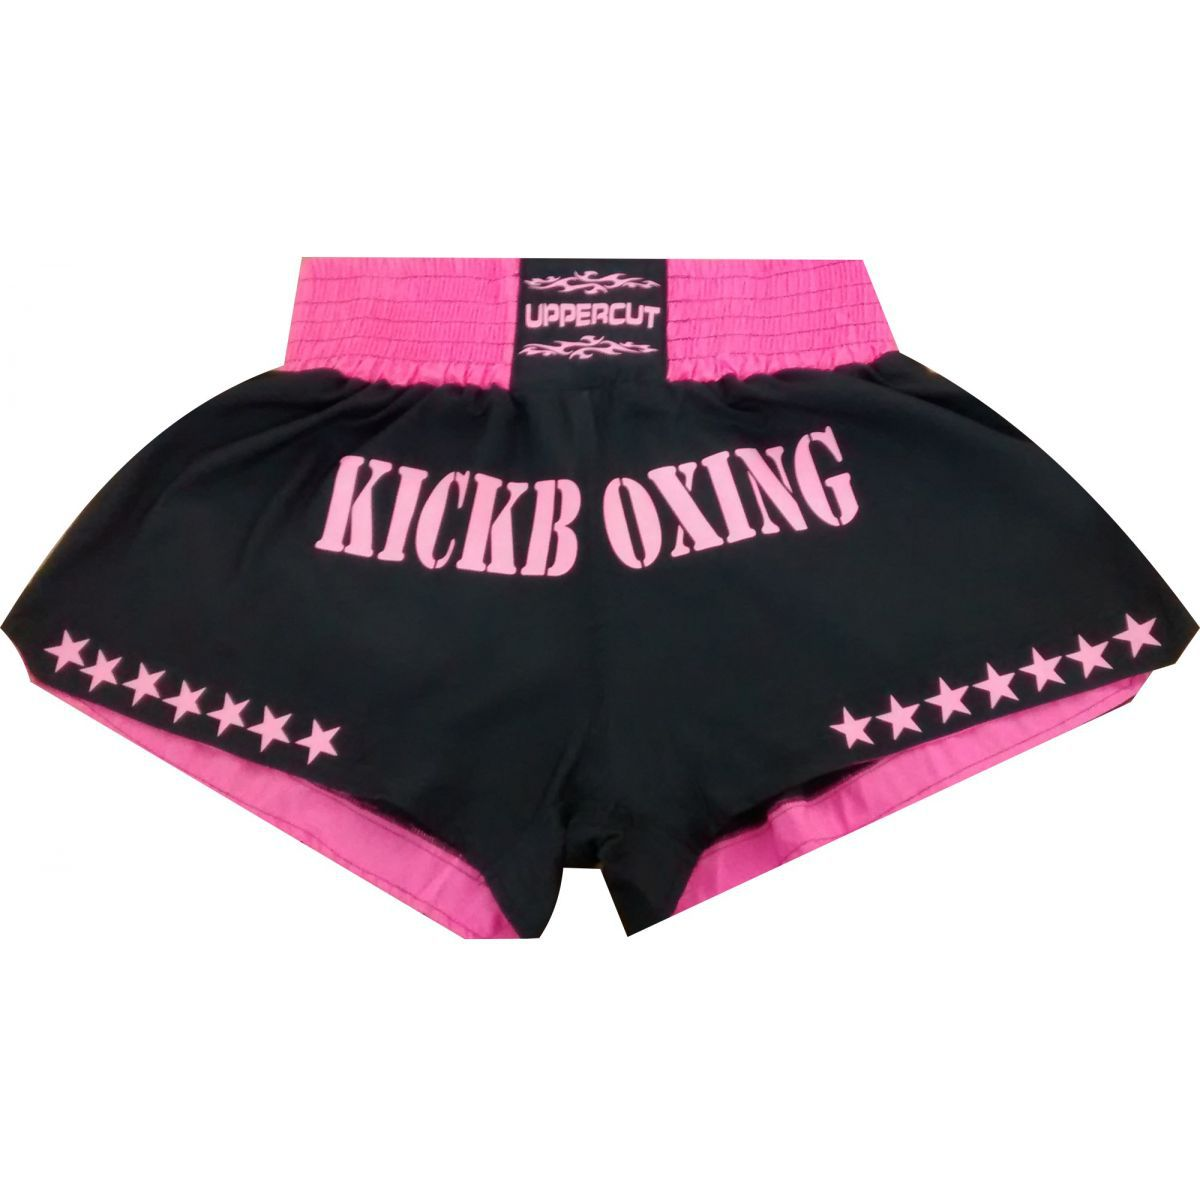 Calção / Short Kickboxing  - GP - Preto/Rosa- Uppercut .